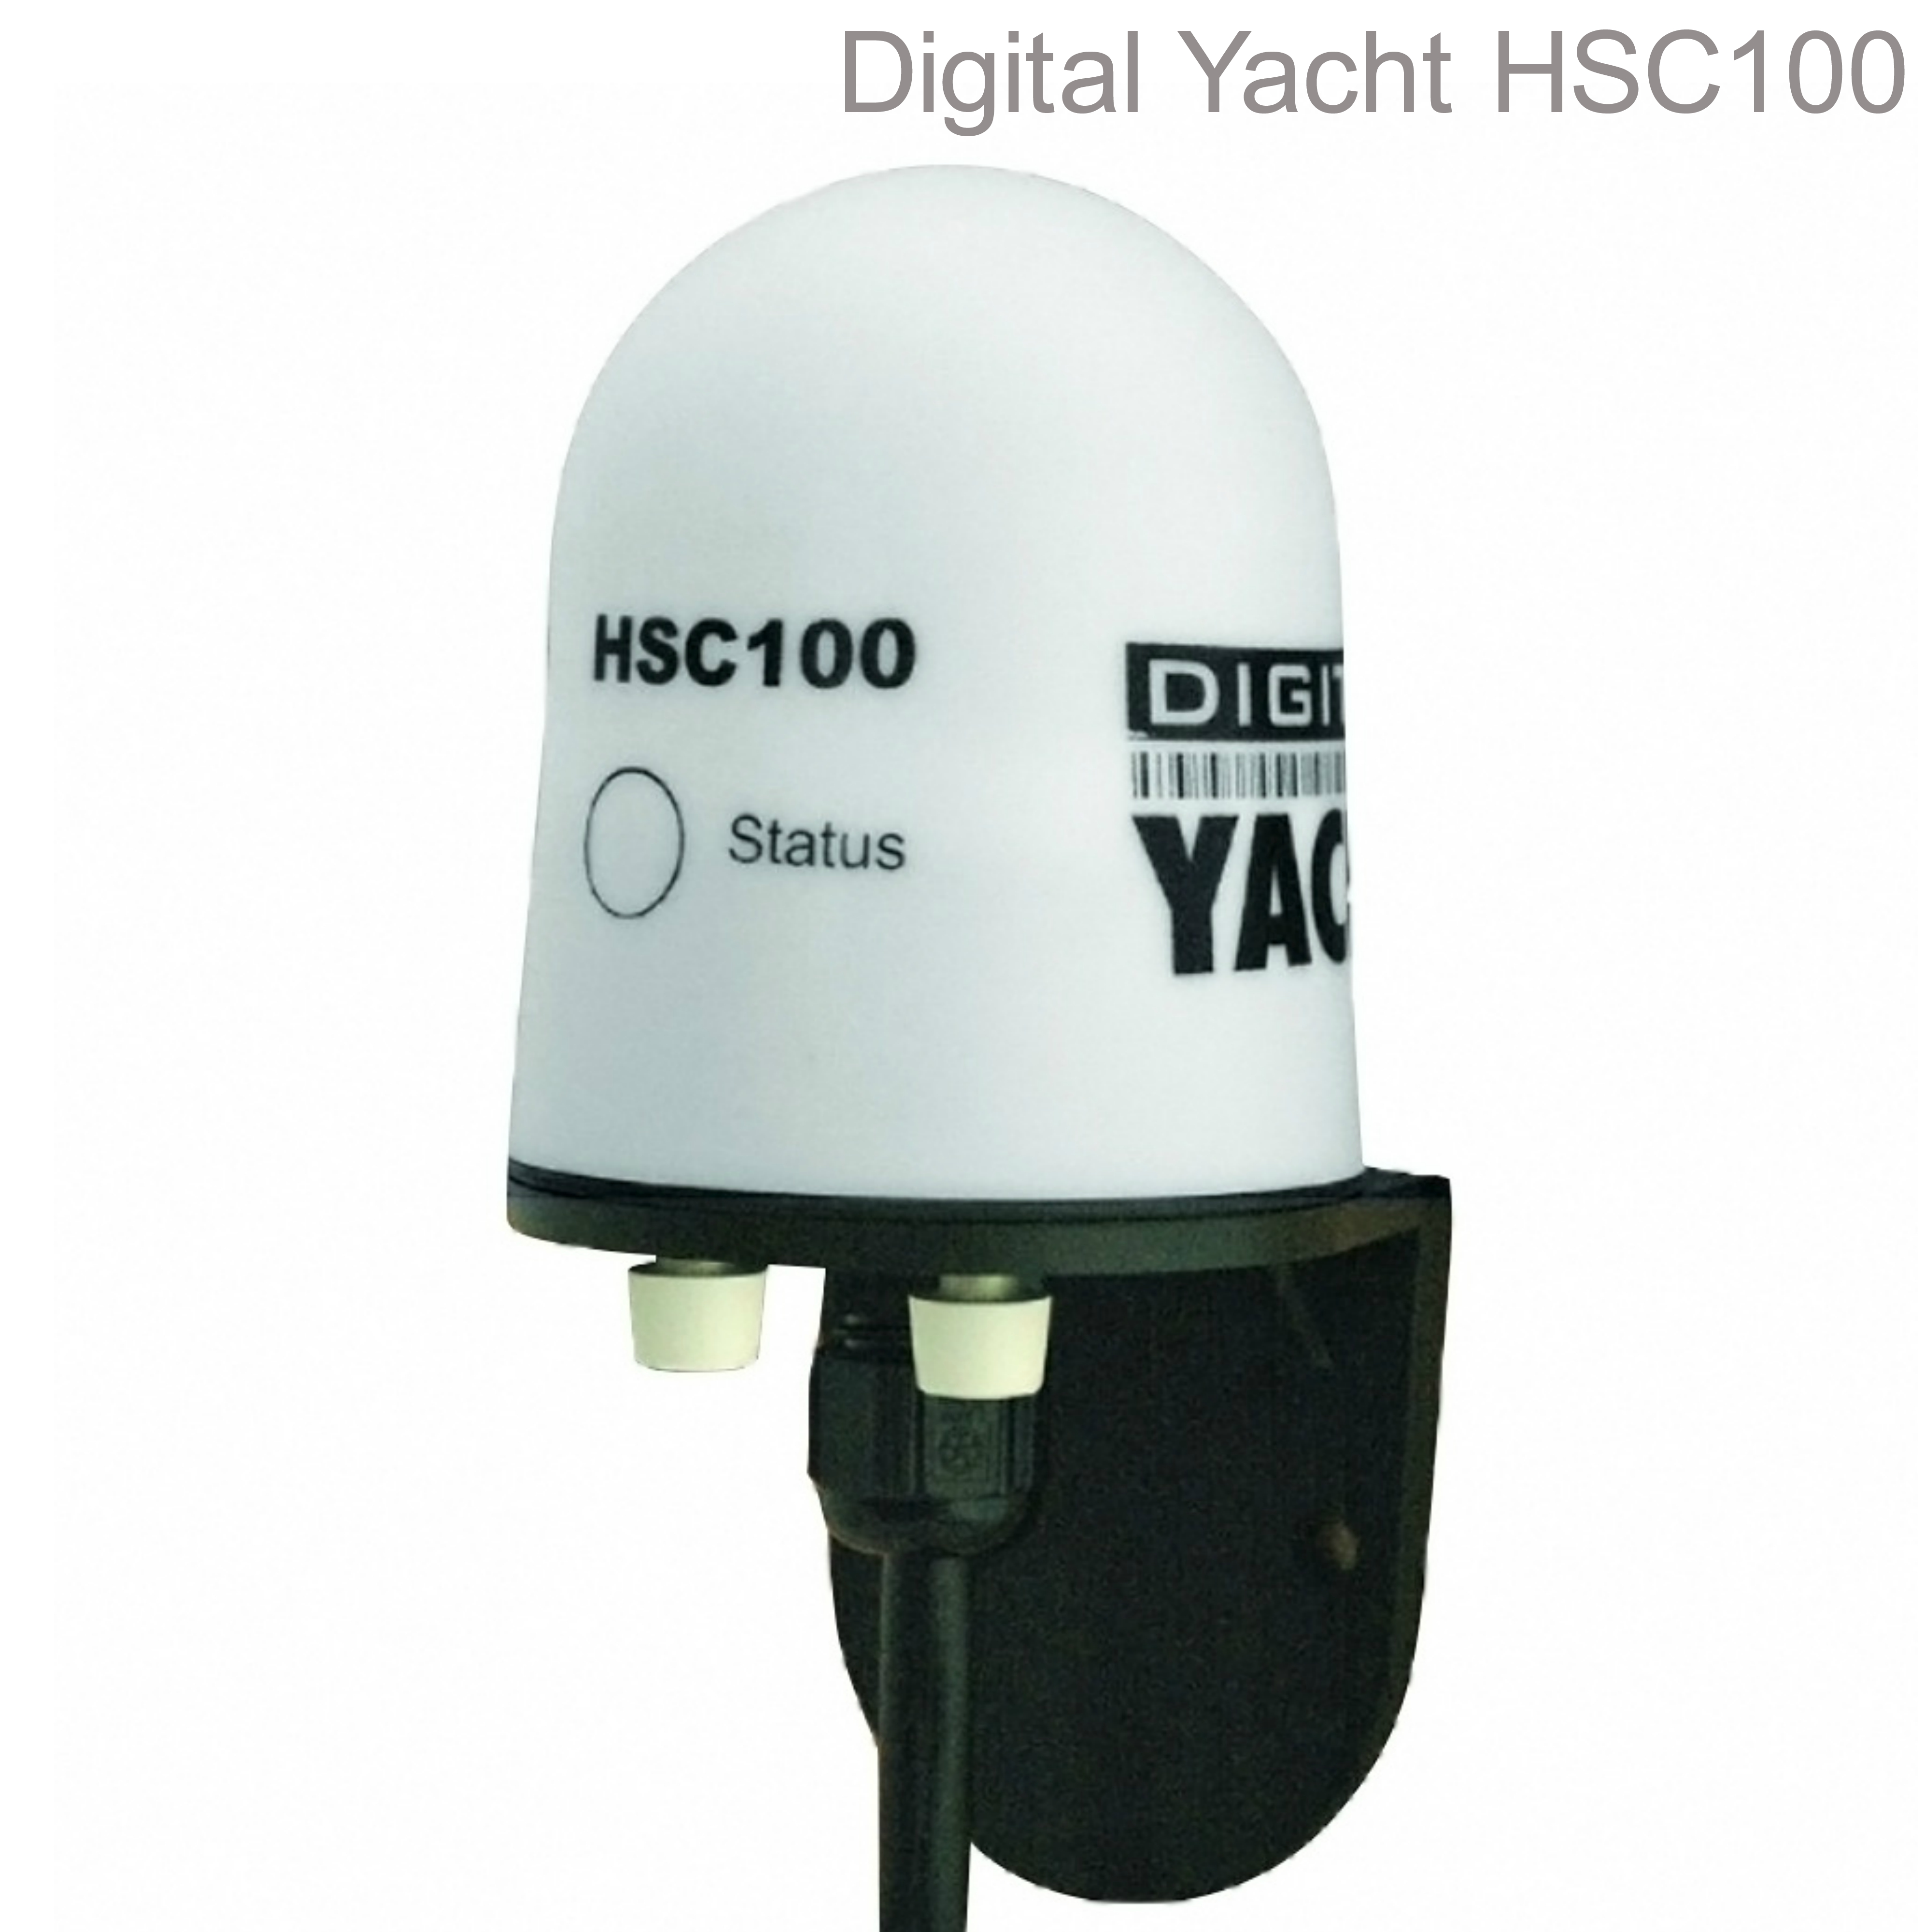 Digital Yacht HSC100 Fluxgate Compass Sensor|Waterproof|HDG Output|45° Degree